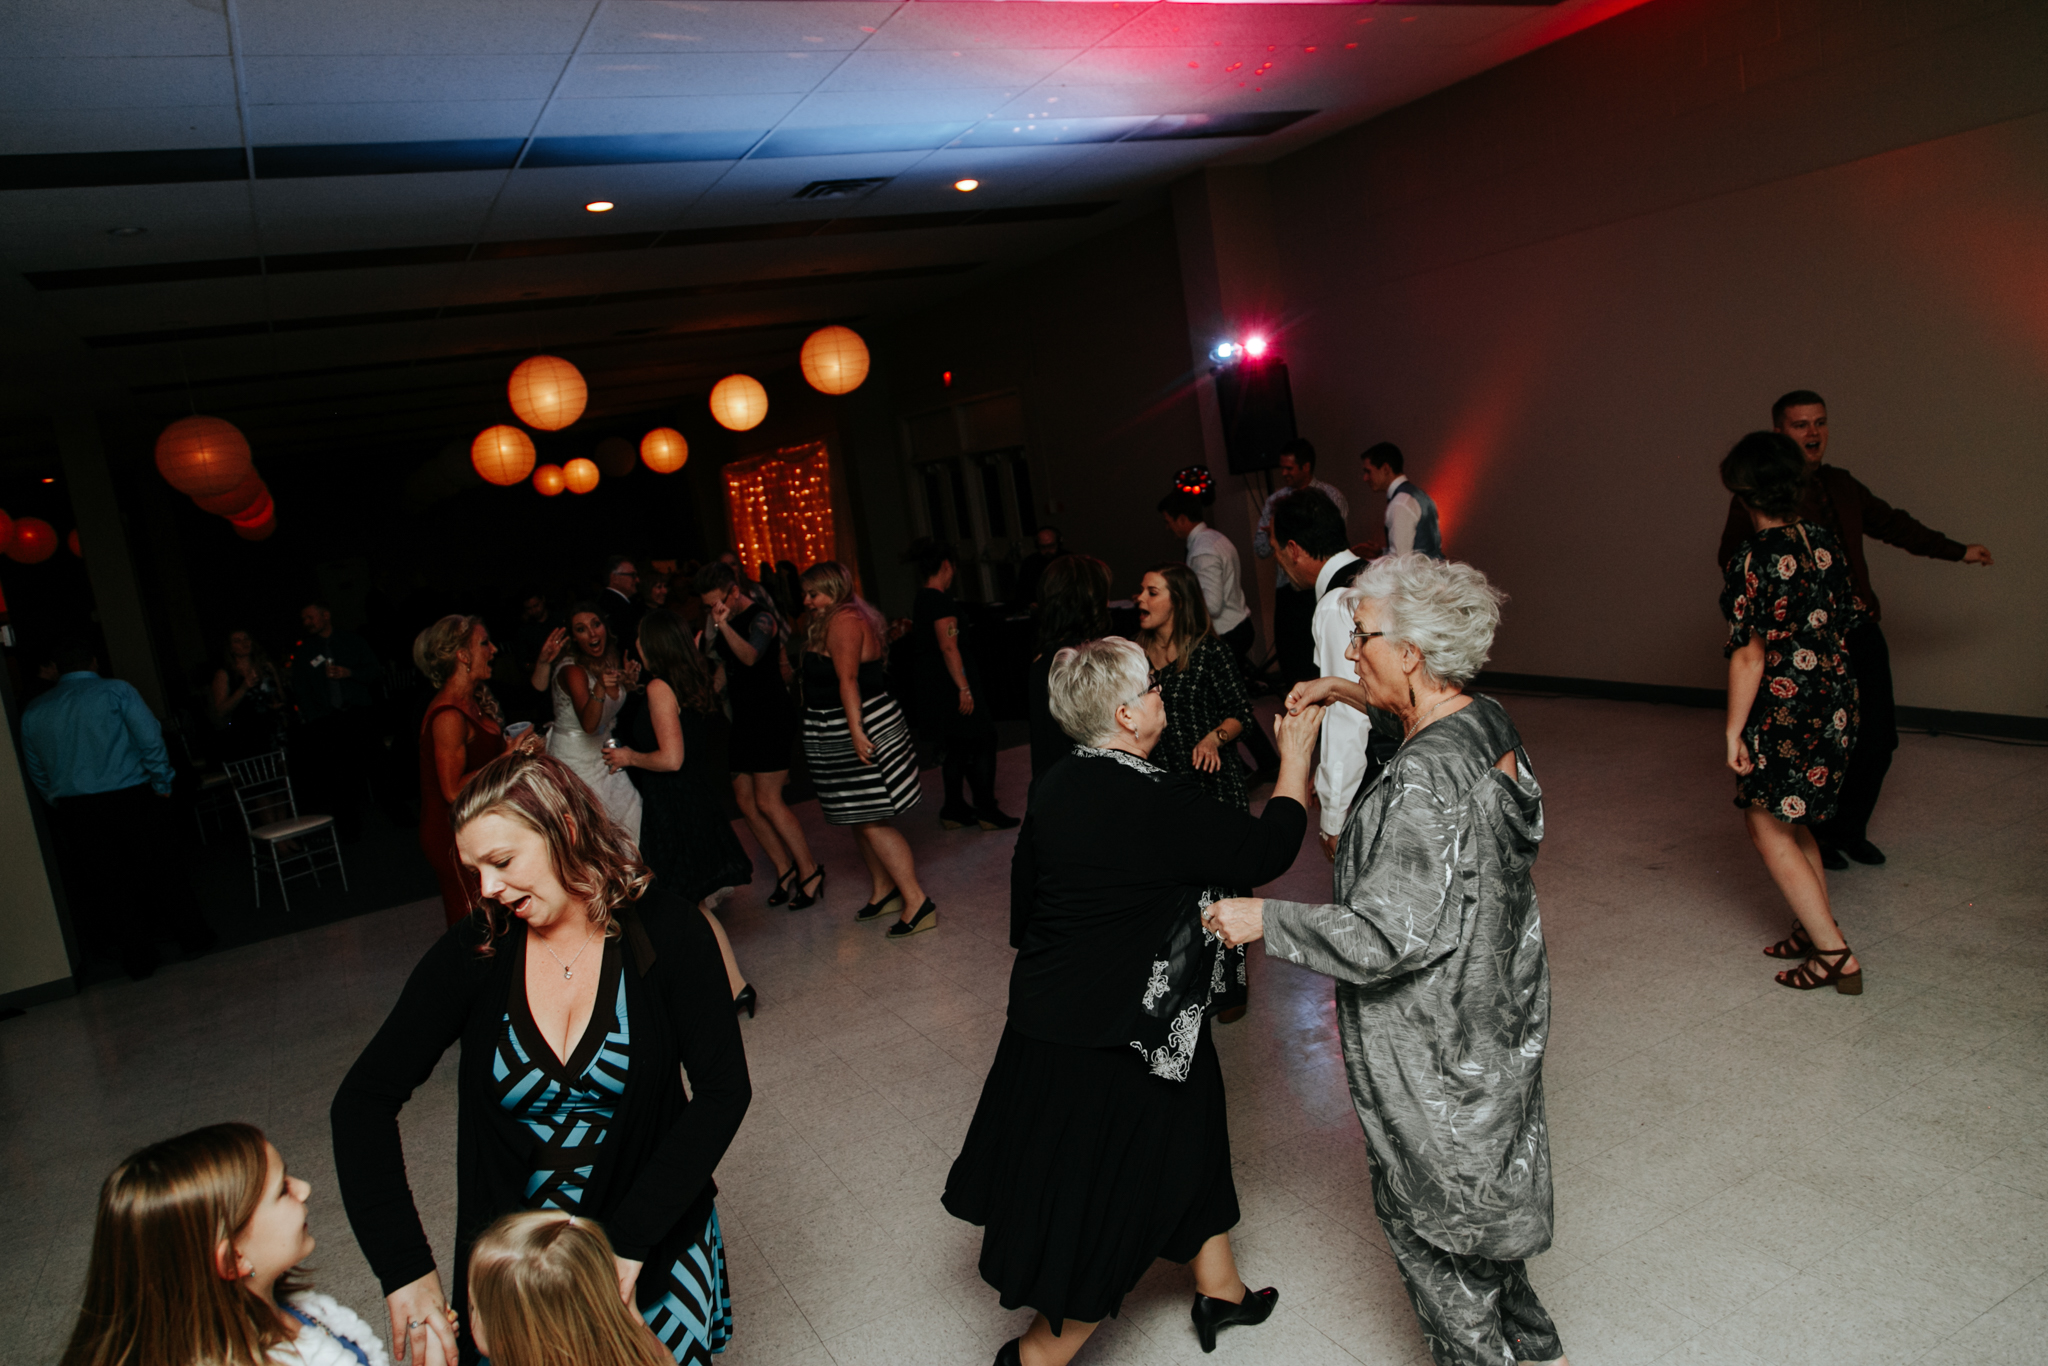 lethbridge-photographer-love-and-be-loved-photography-rocky-mountain-turf-club-reception-katie-kelli-wedding-picture-image-photo-437.jpg